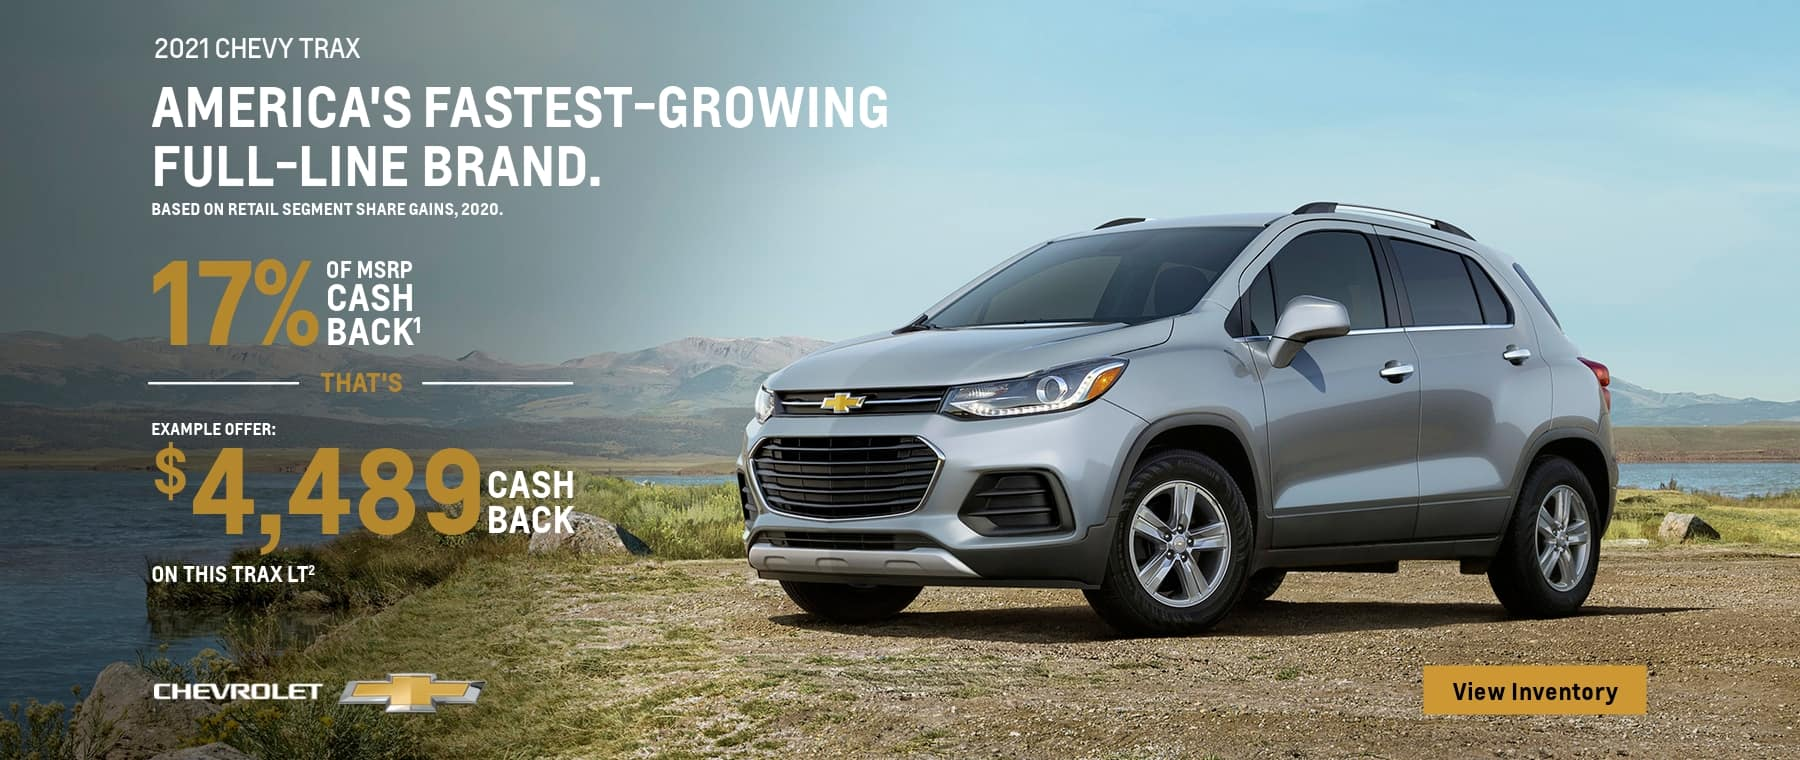 2021 chevy trax example offer: of msrp cash back $sch chevrolet on this trax lt2 view inventory